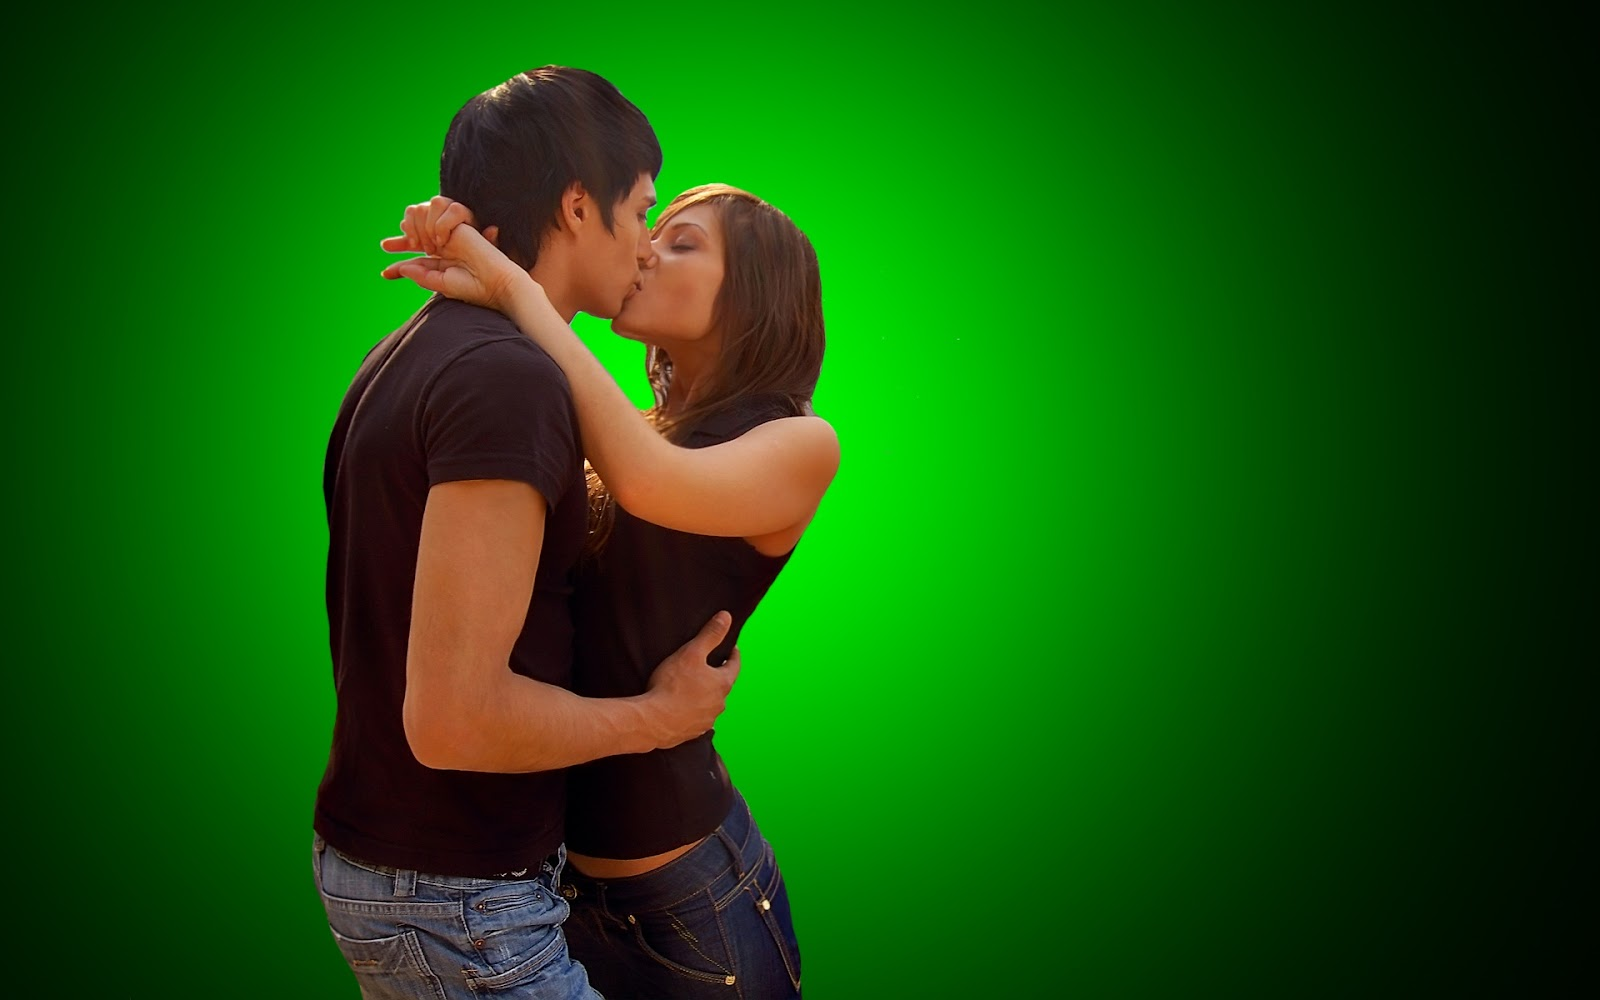 Hot Couple Kissing 1080P Hd Wallpapers  Images  Hd -9532